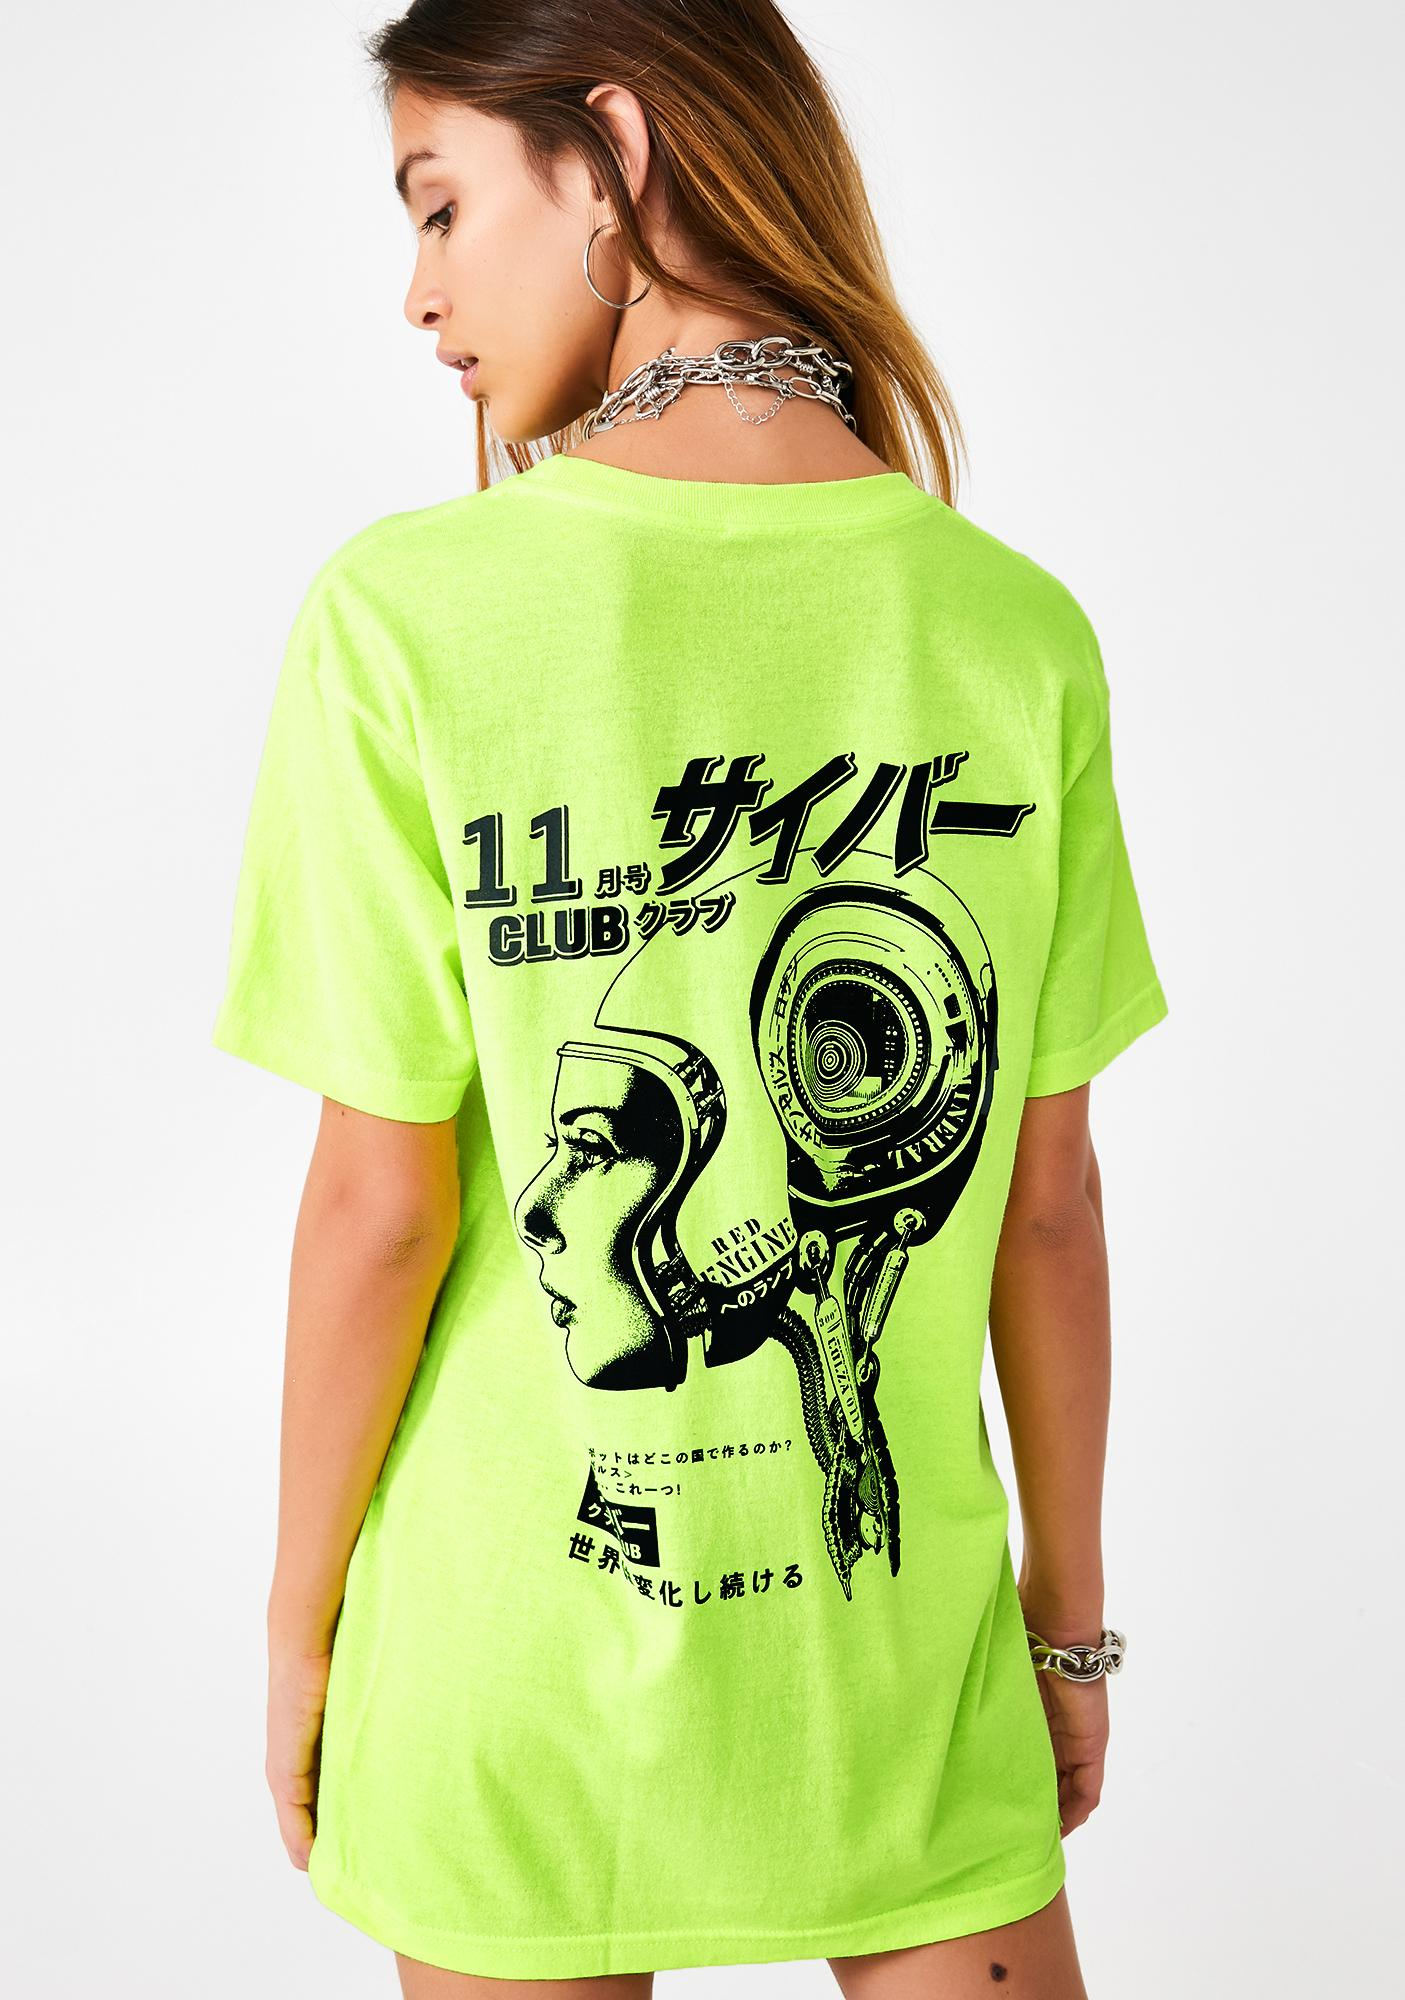 ILL INTENT Club II Graphic Tee